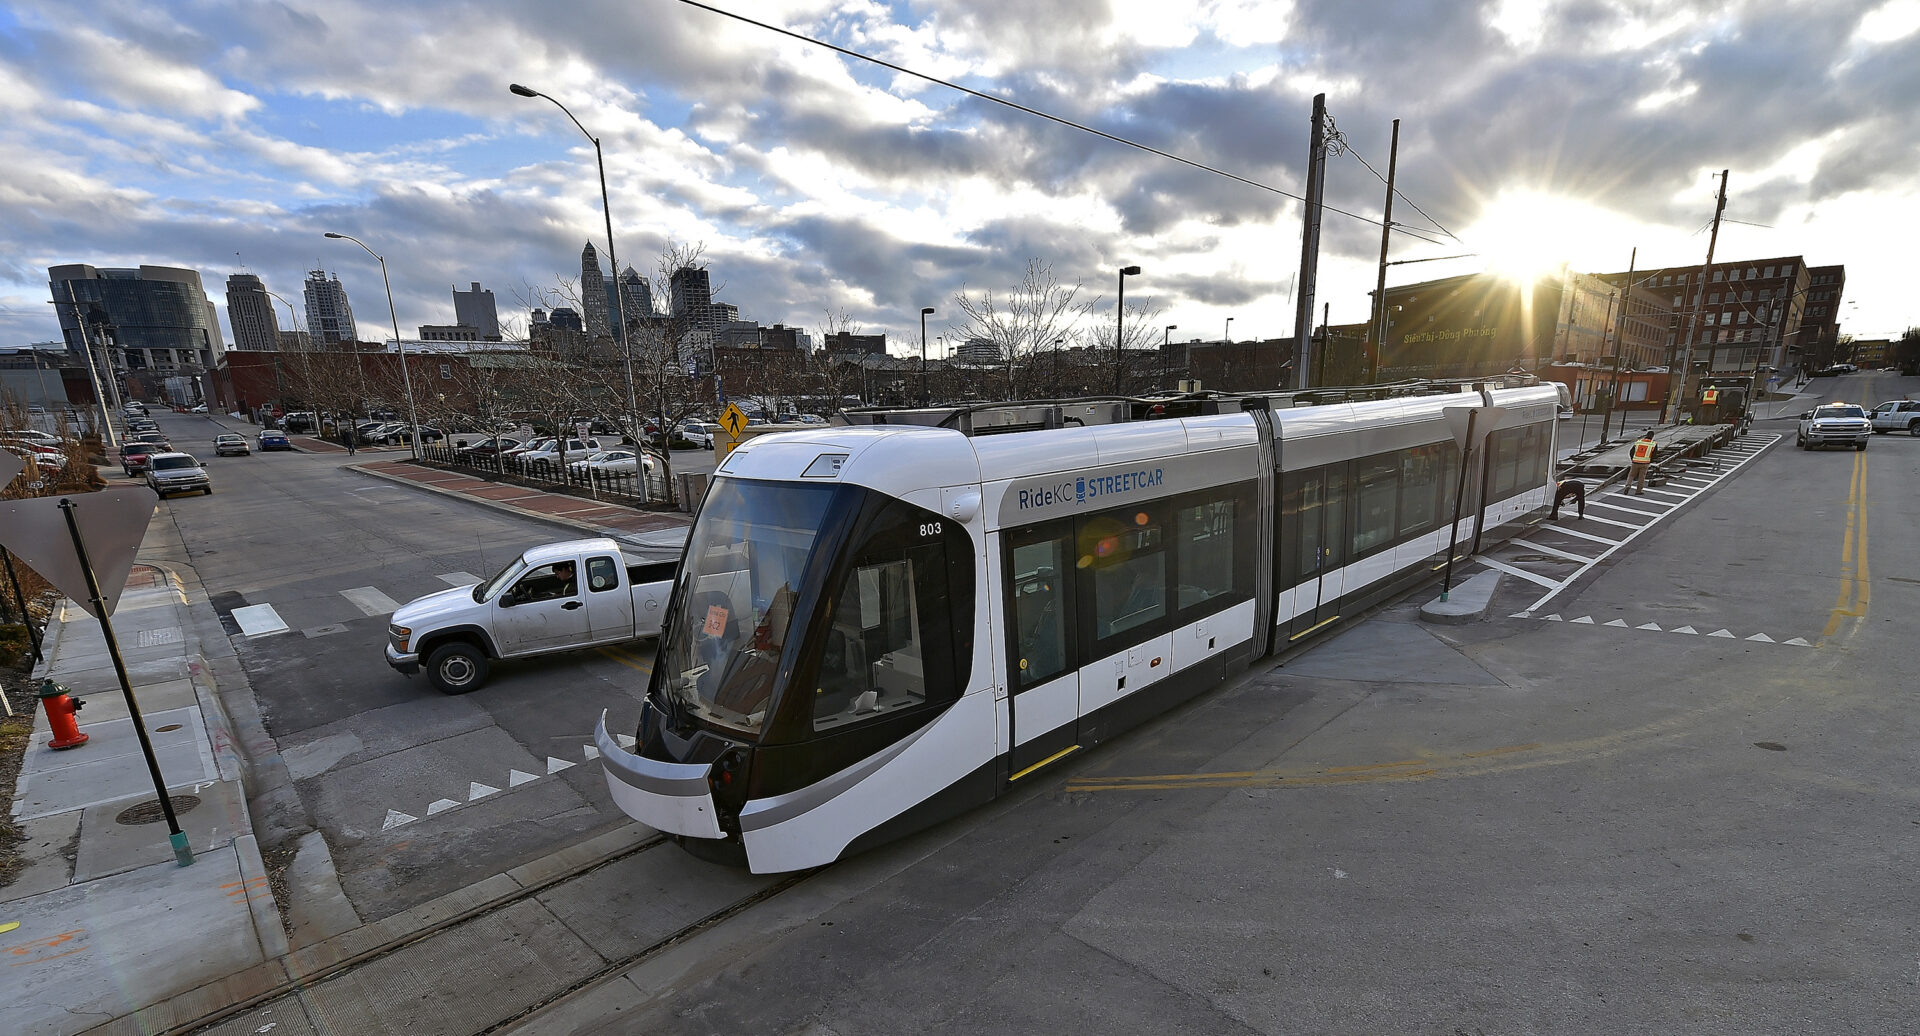 A streetcar to be delivered to Kansas City is offloaded from its trailer on Wednesday, Feb. 3, 2016, in Kansas City, Mo. The city is on schedule to begin service in April. (John Sleezer/Kansas City Star/TNS via Getty Images)